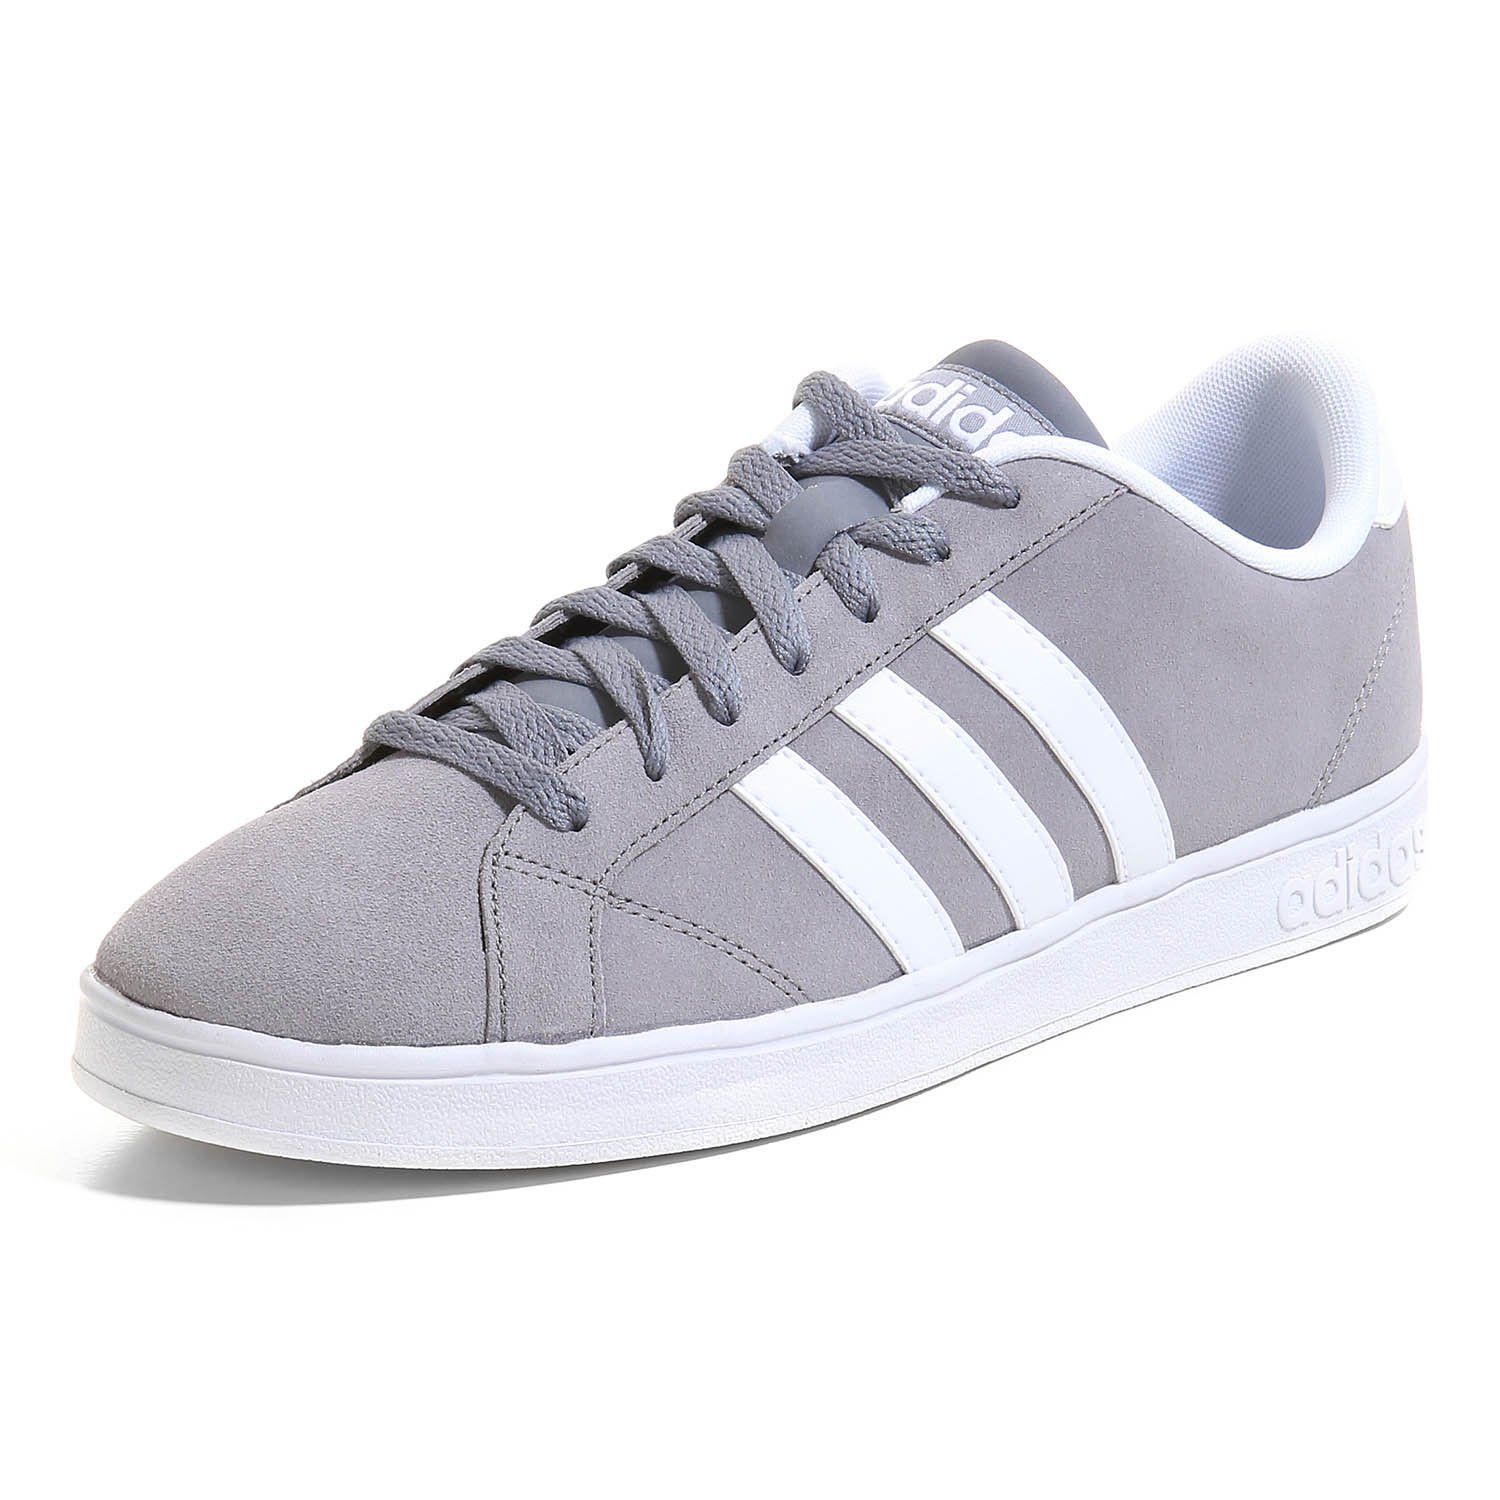 Chaussures Adidas Neo Grise